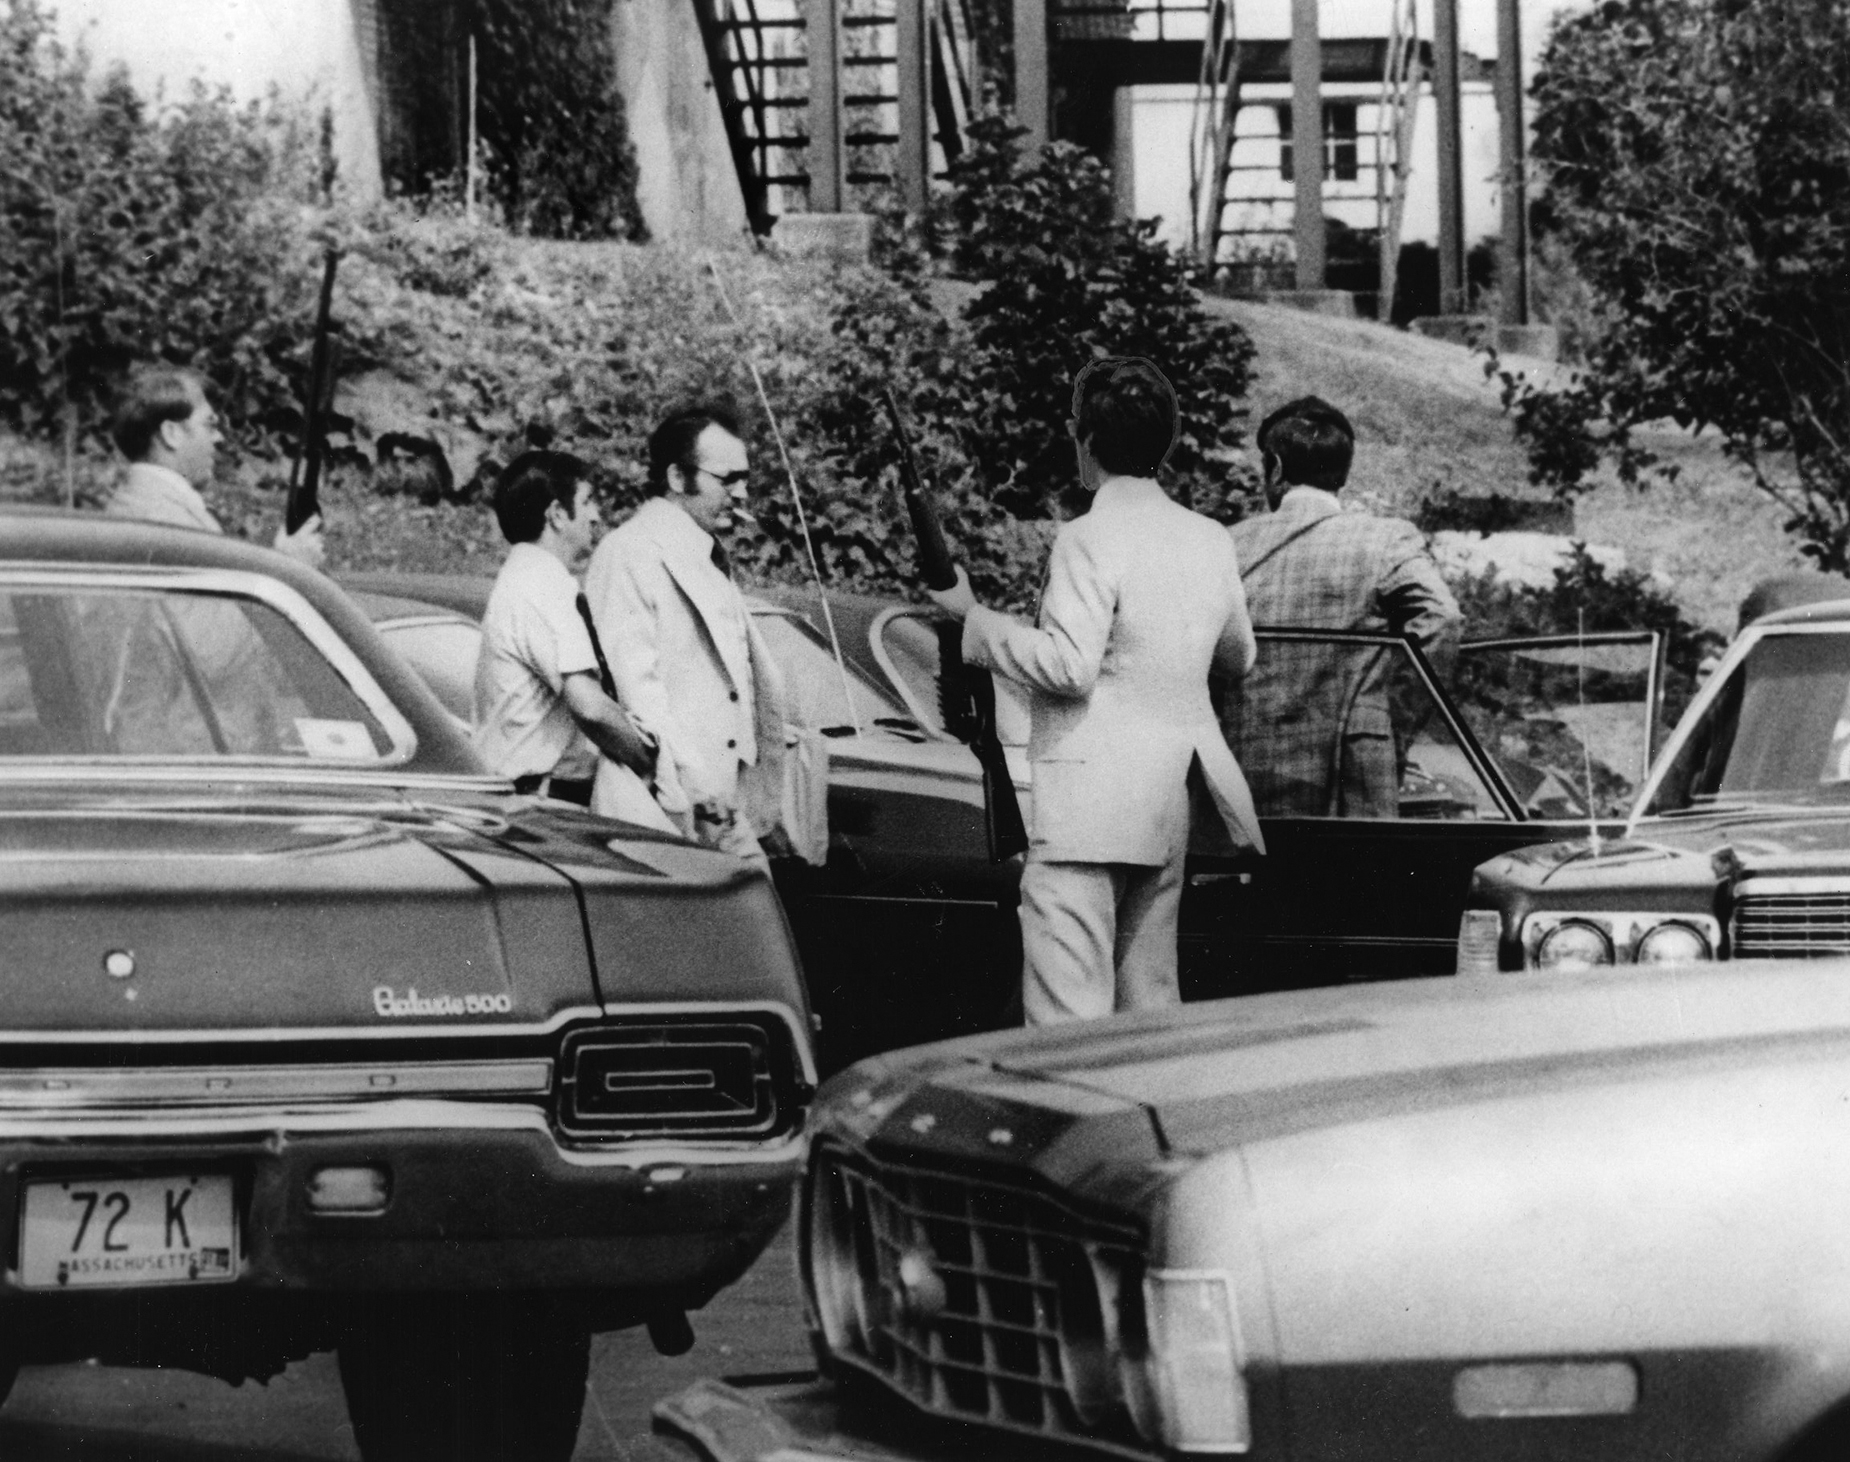 In July 1976, just a few months into the trial, armed guards accompany  Robert Dussault into the Franklin County Courthouse in Greenfield,Massachusetts.  Courtesy of the Providence Journal.